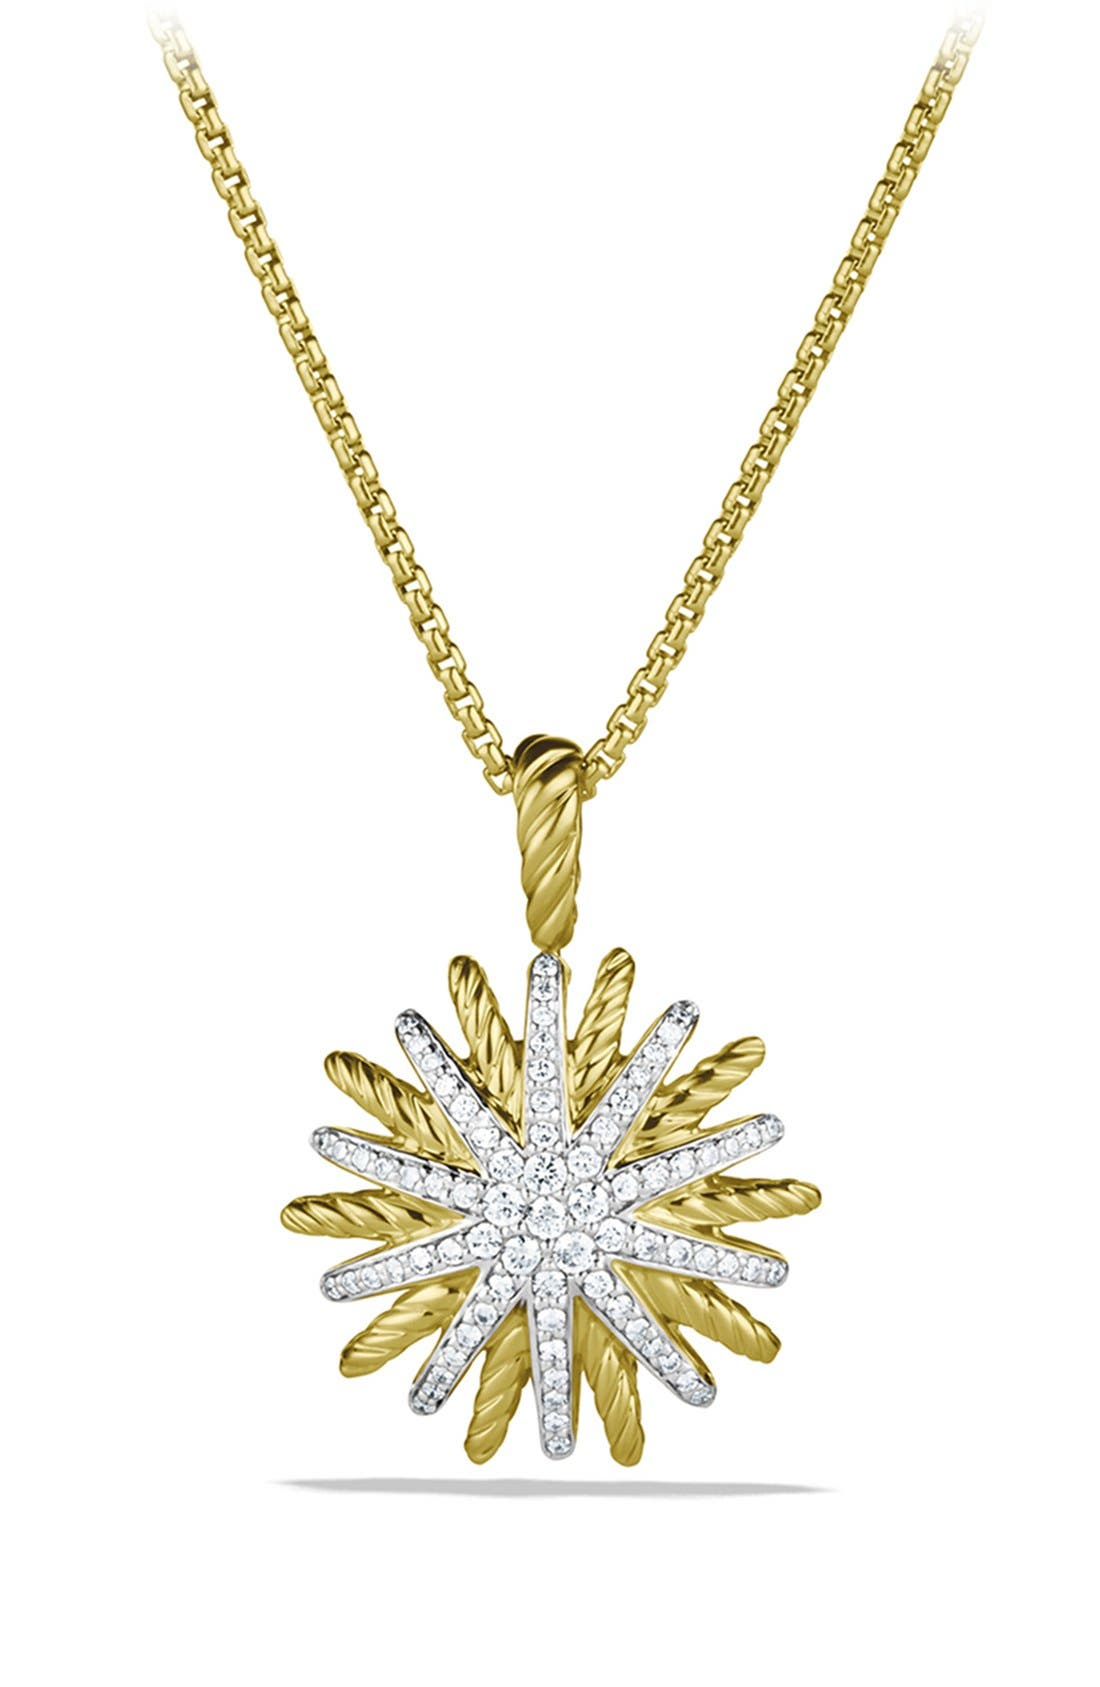 David Yurman 'Starburst' Small Pendant with Diamonds in Gold on Chain